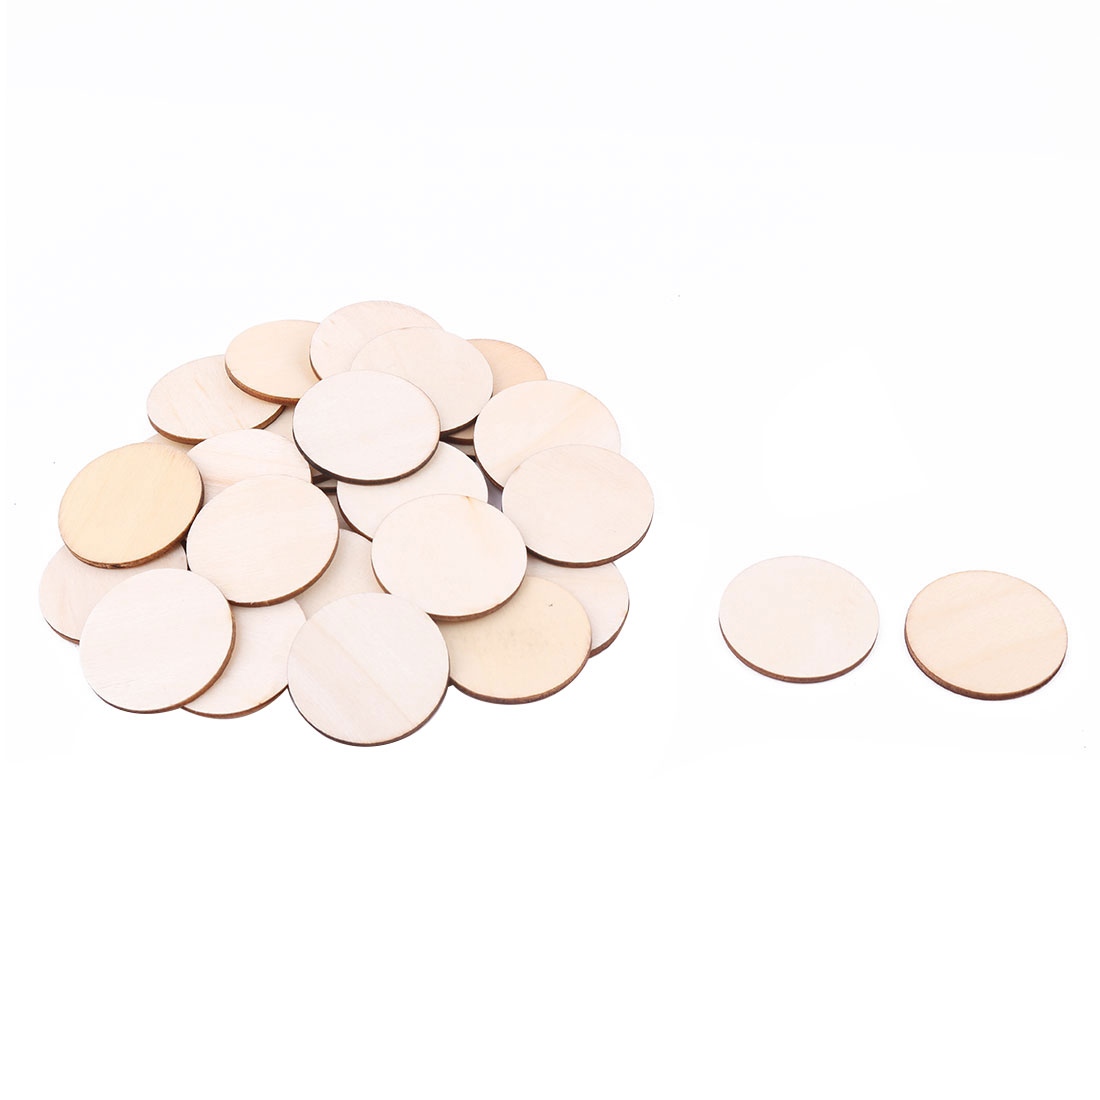 Wooden Slices Round Shape DIY Gift Craft Decor Accessories Embellishment Beige 40mm Dia 30pcs